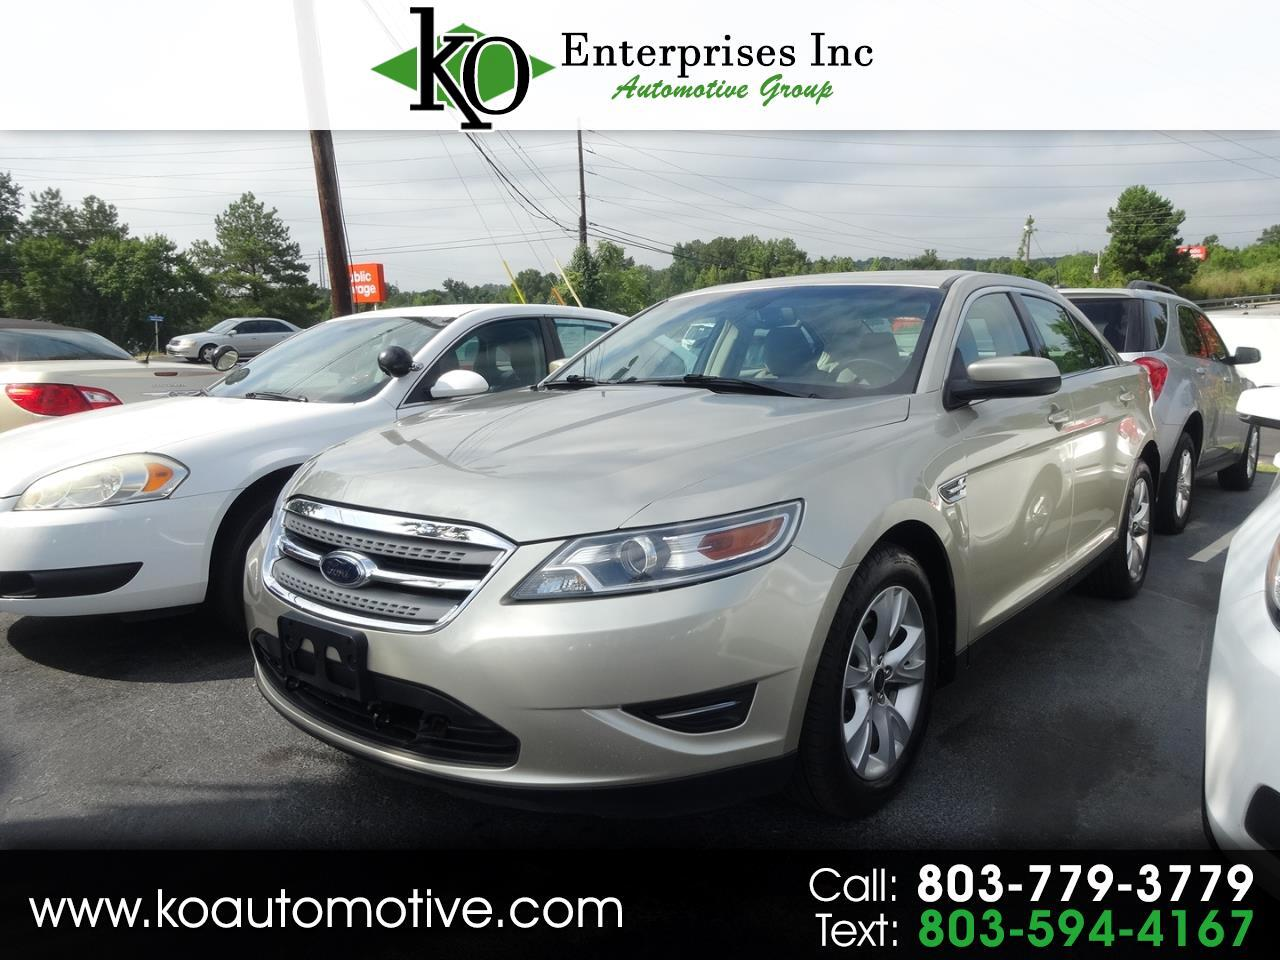 2010 Ford Taurus 4dr Sdn SEL FWD